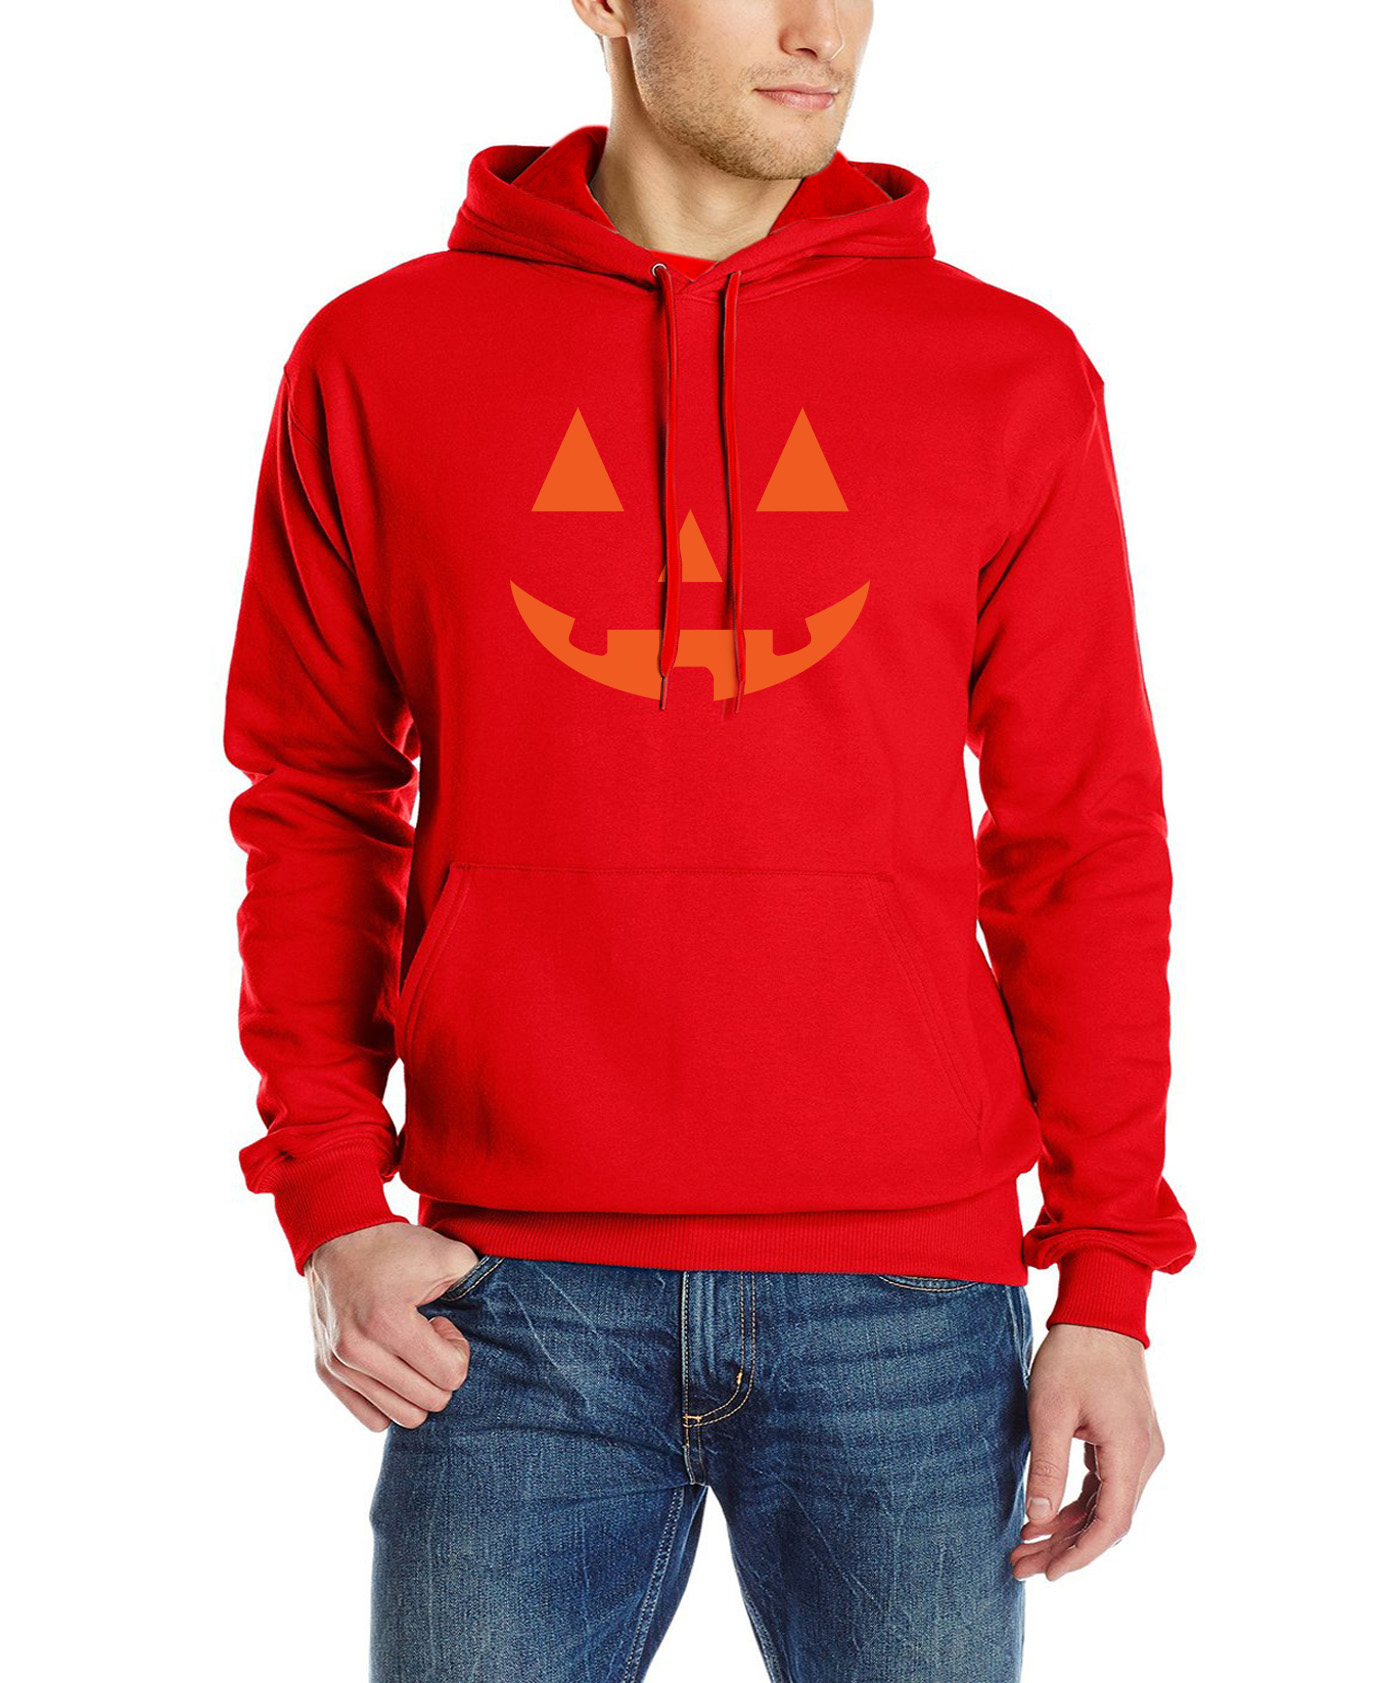 sweatshirt men lantern pumpkin halloween costume autumn fashion ...